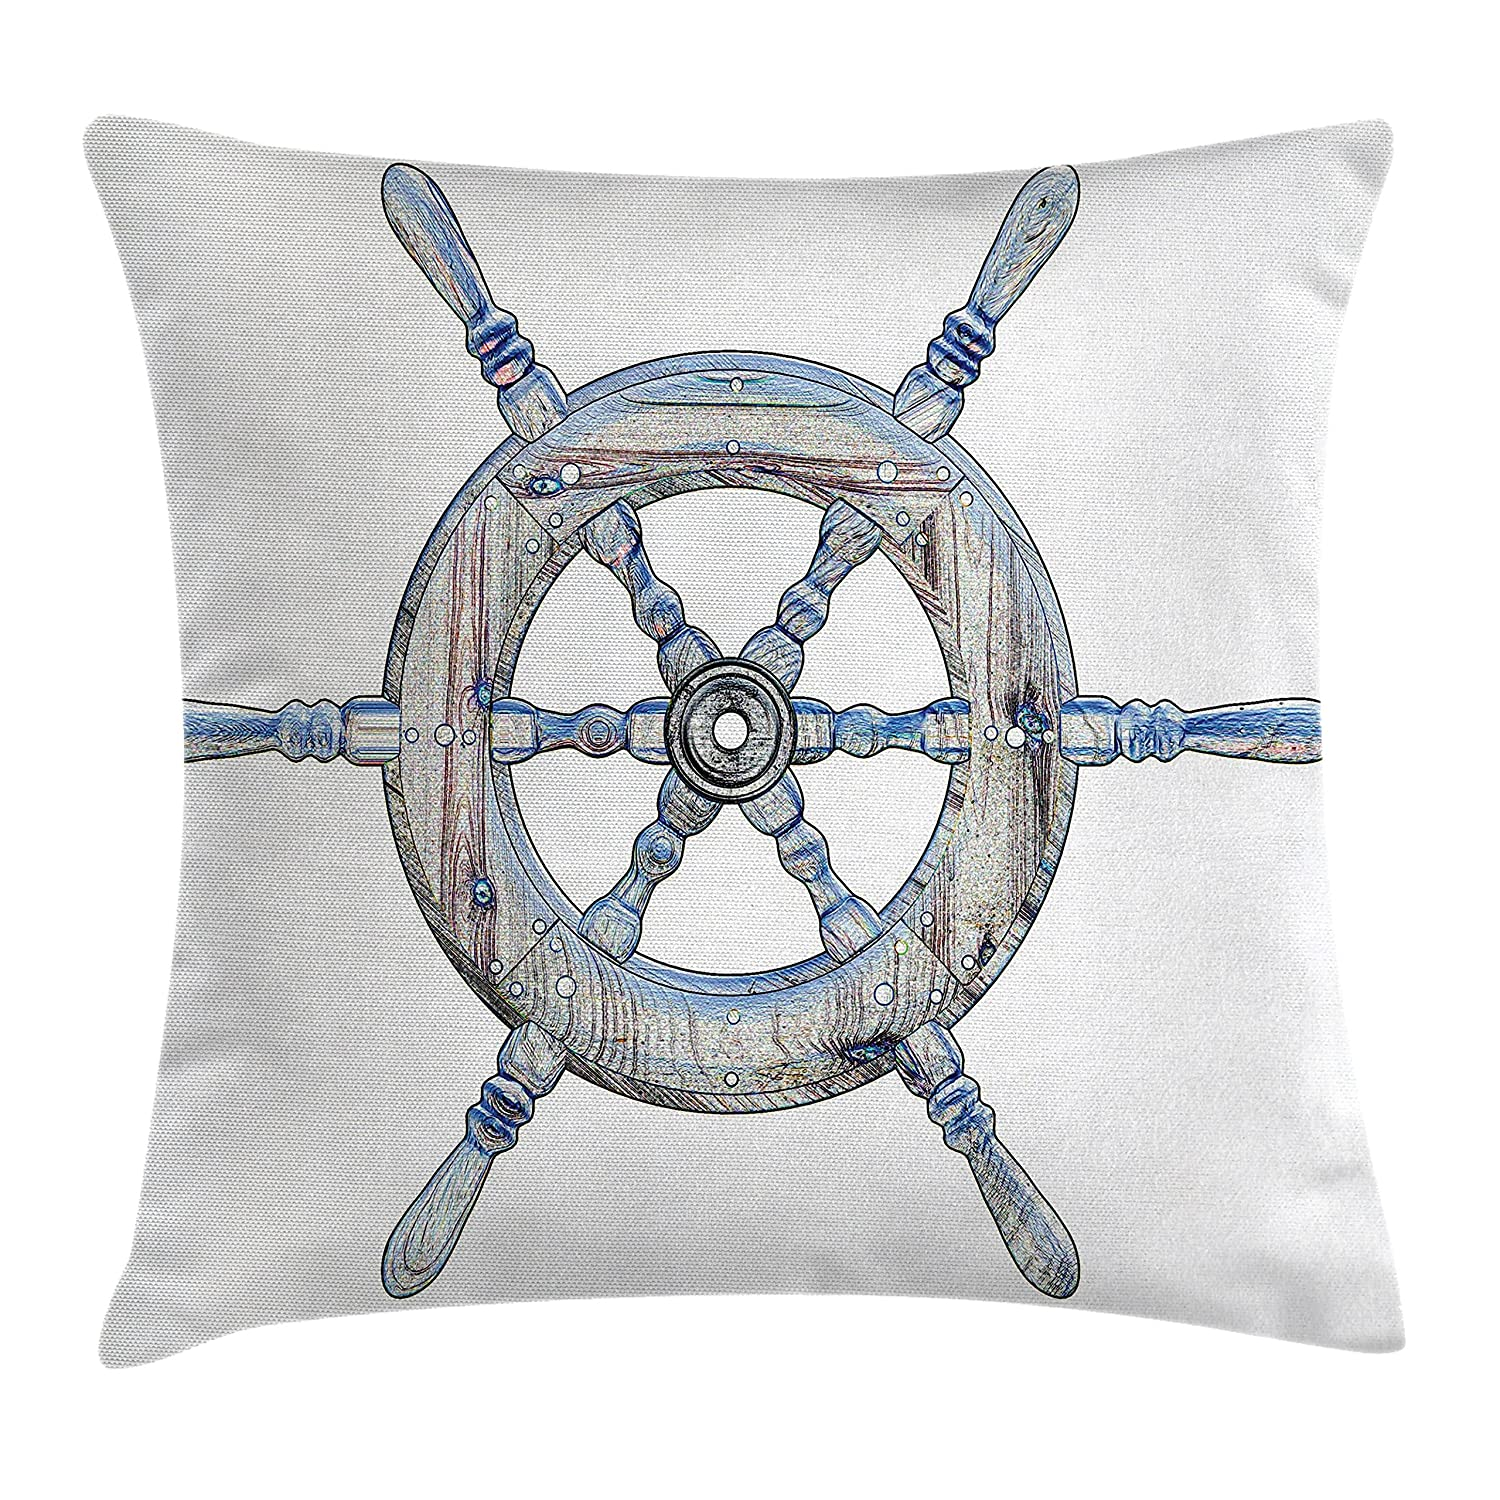 Blue White Ambesonne Nautical Decor Throw Pillow Cushion Cover Illustration Wooden Ship Wheel White Backdrop Sailing Exploring Ocean Theme 16 X 16 Inches Decorative Square Accent Pillow Case